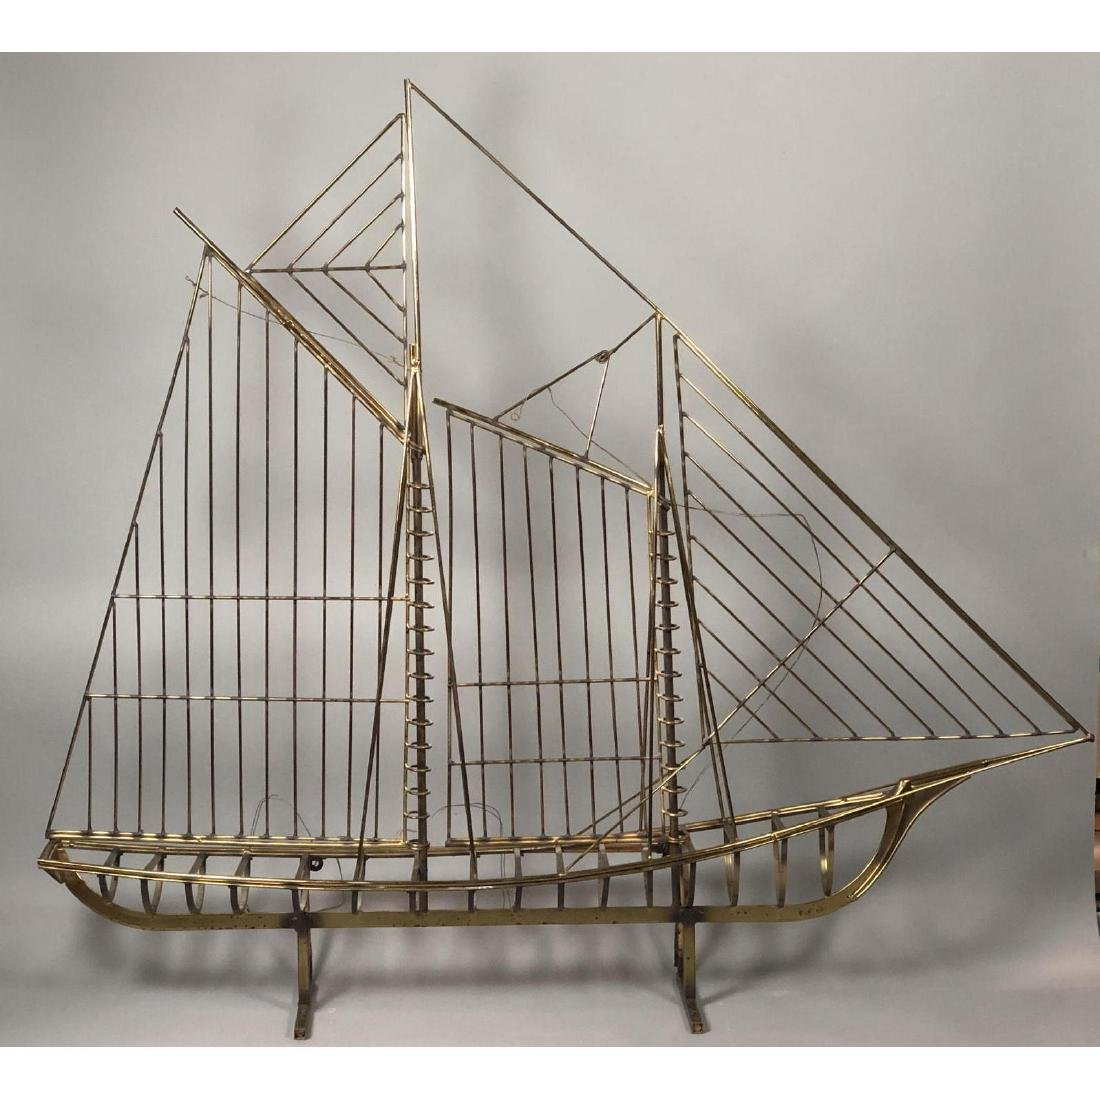 C JERE for ARTISAN HOUSE Large Figural Ship Sculp